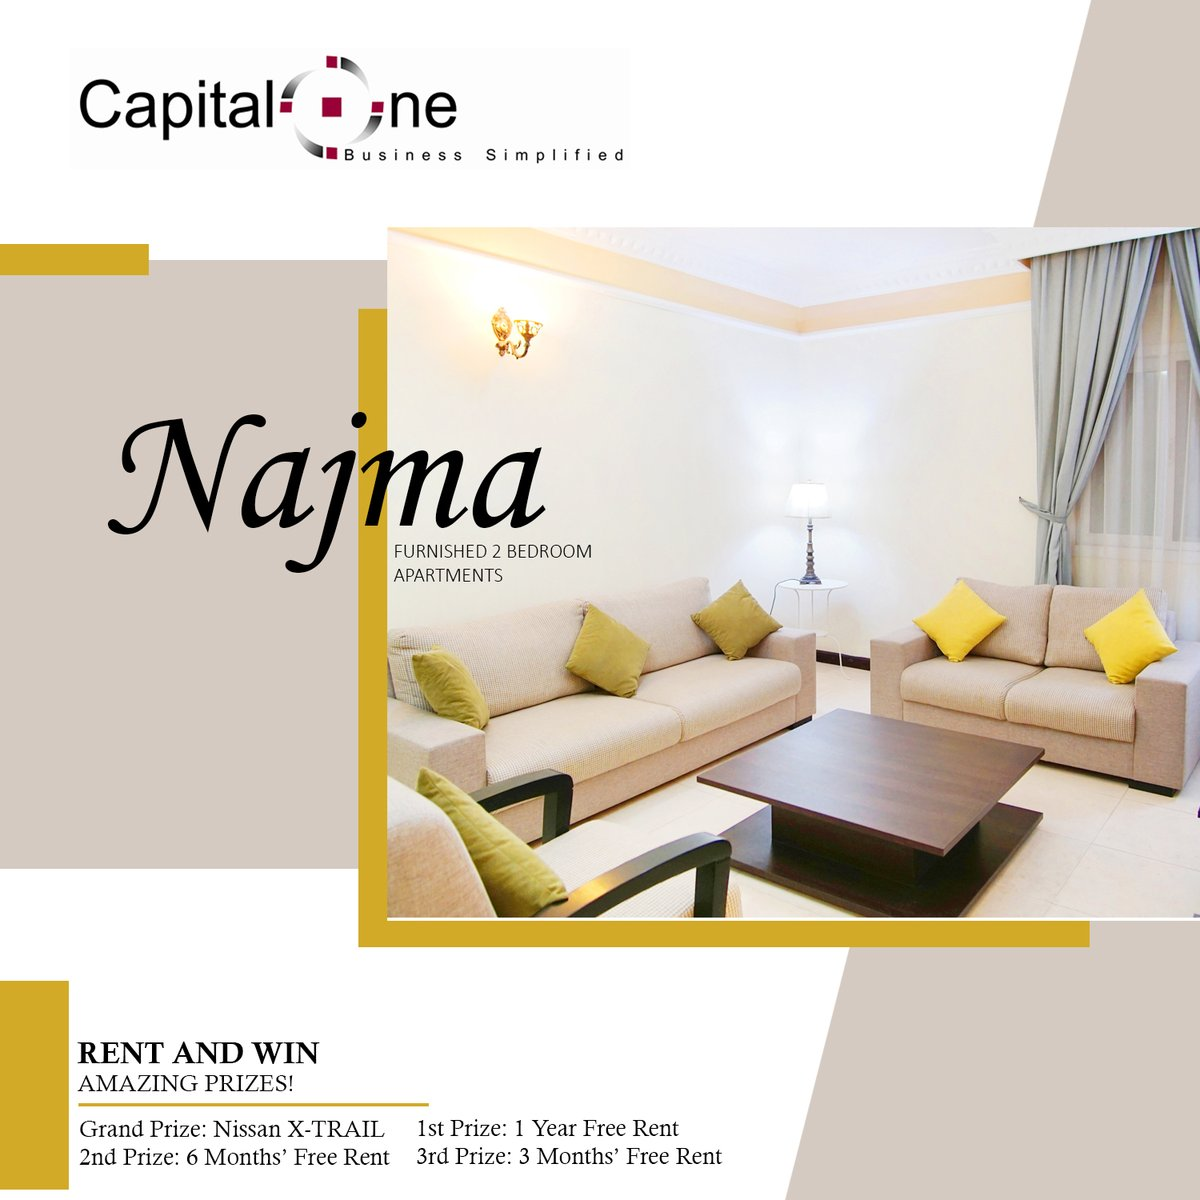 Ample Space and a very homey 2BHK Fully Furnished Apartment located in Najma area.  Sales Executive: Mr. Sunil - (+974) 50899555 Mr. Nidhin - (+974) 50699444 Mr. Amine - (+974) 50899444 Mr. Azif - (+974) 50899333 Mr. Shaheen - (+974) 50699333  #doha #Qatar #Qatar2022